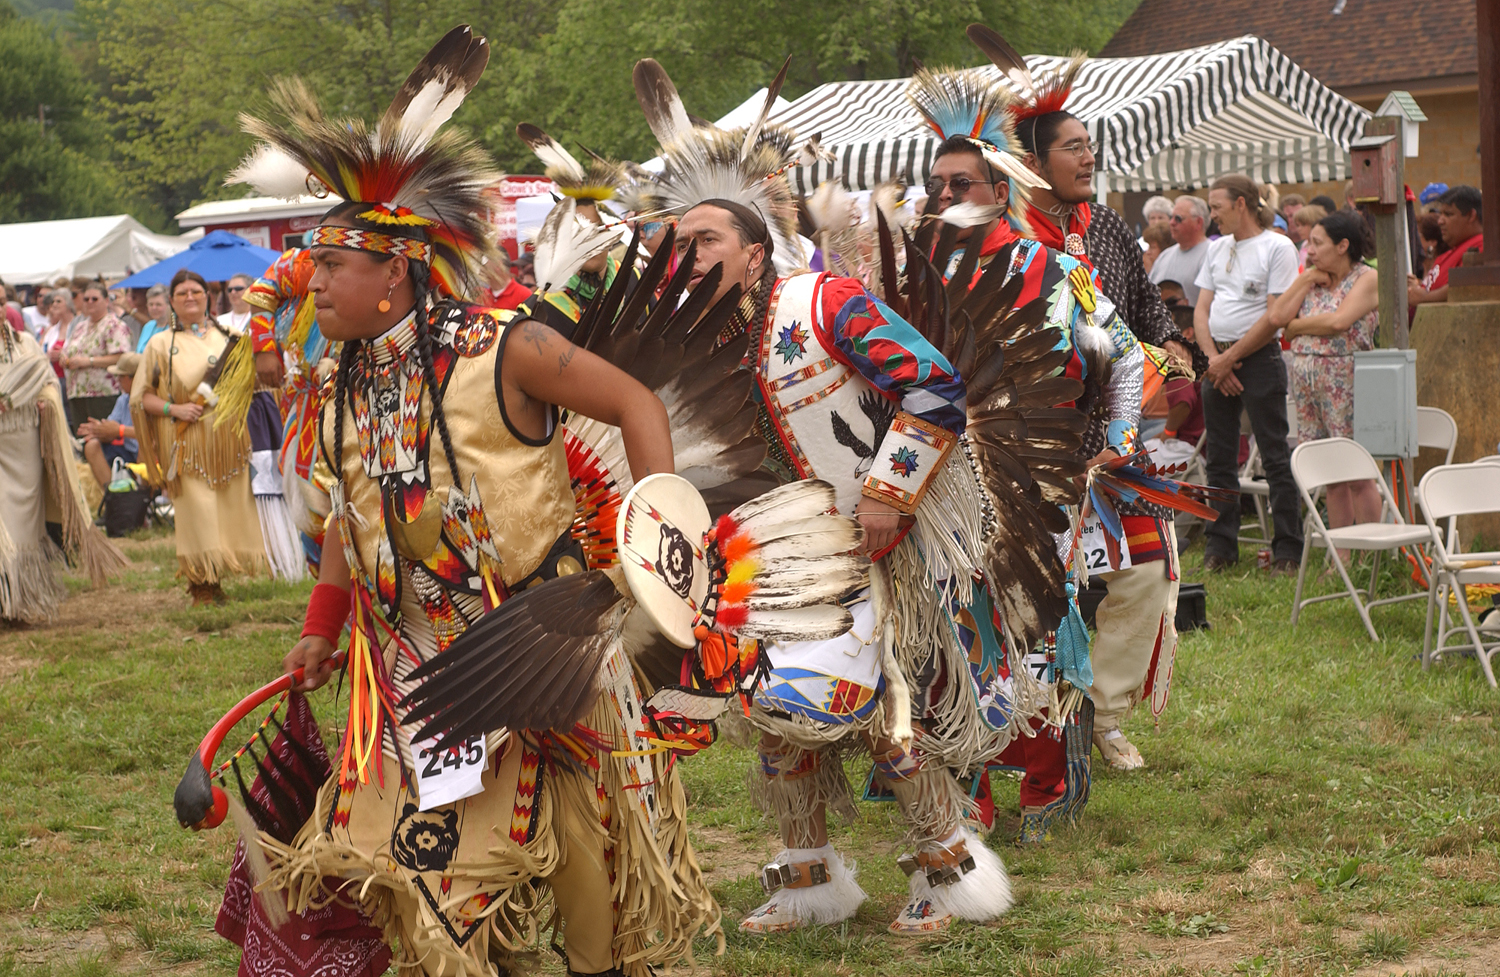 Eastern Band of Cherokee Hosts Fourth of July Pow Wow, July 1-2 at